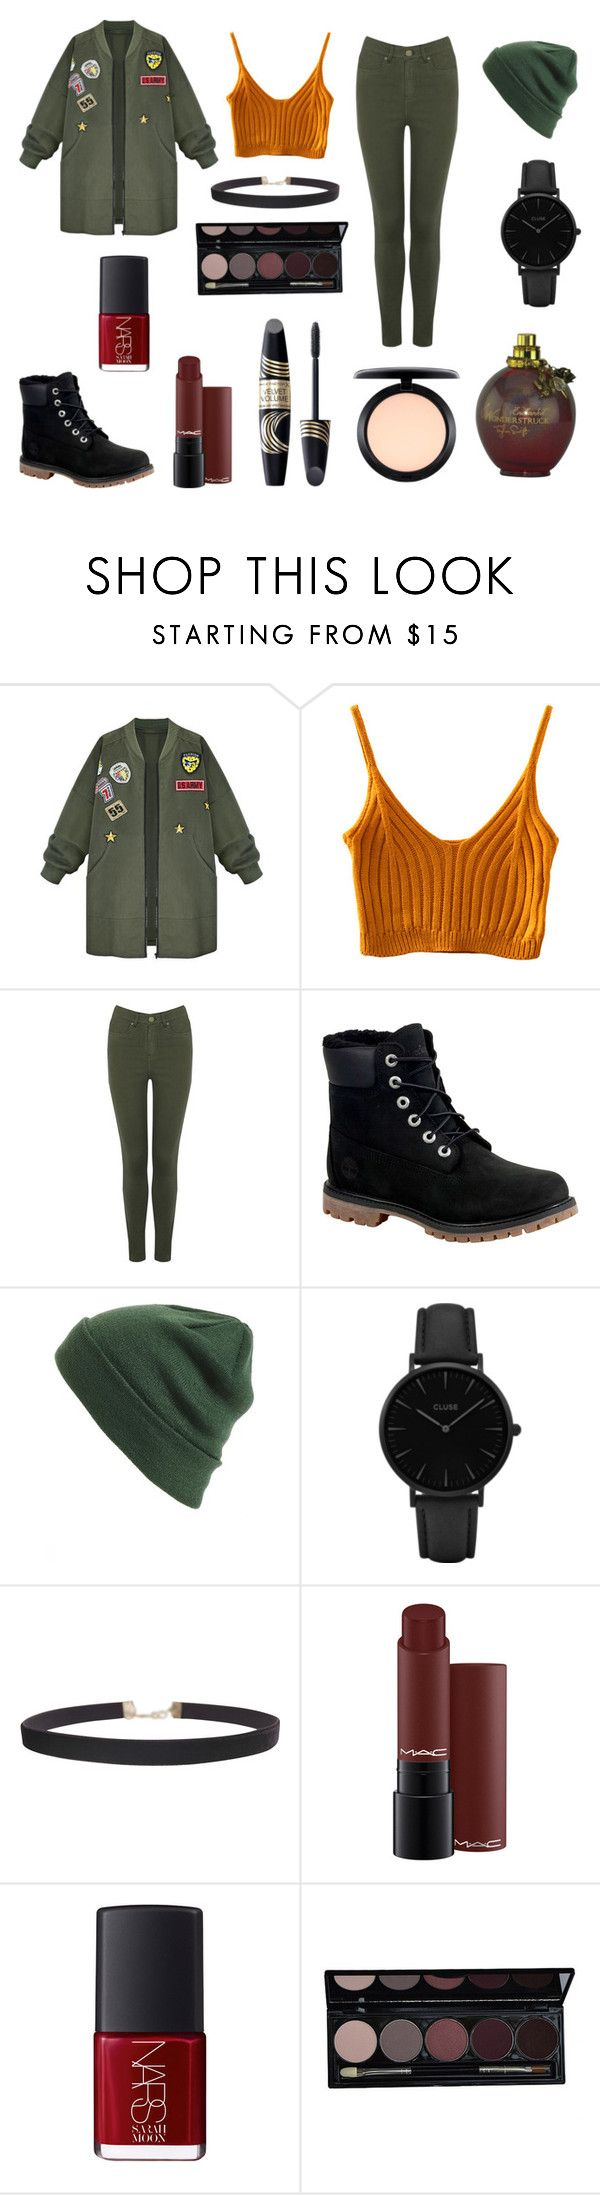 прогулка by reduska on Polyvore featuring мода, WithChic, Oasis, Timberland, CLUSE, Humble Chic, BP., MAC Cosmetics, NARS Cosmetics and Max Factor